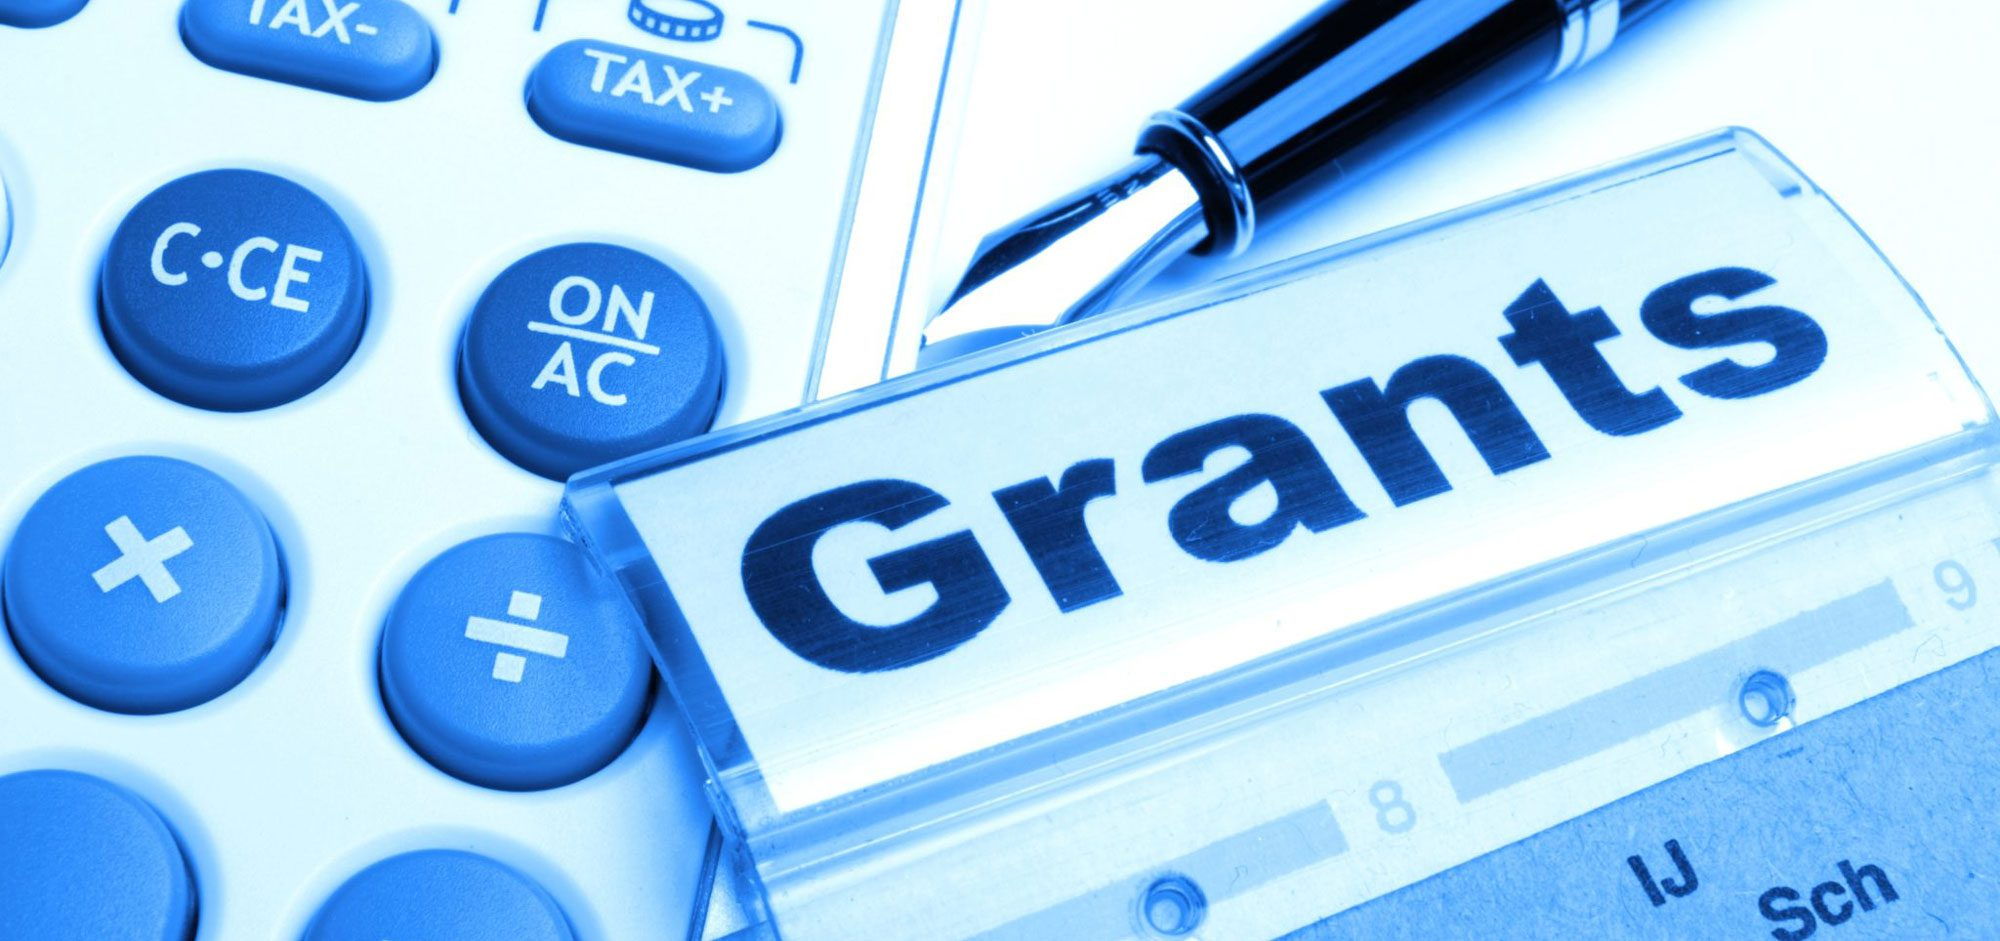 Resources and Grant Information